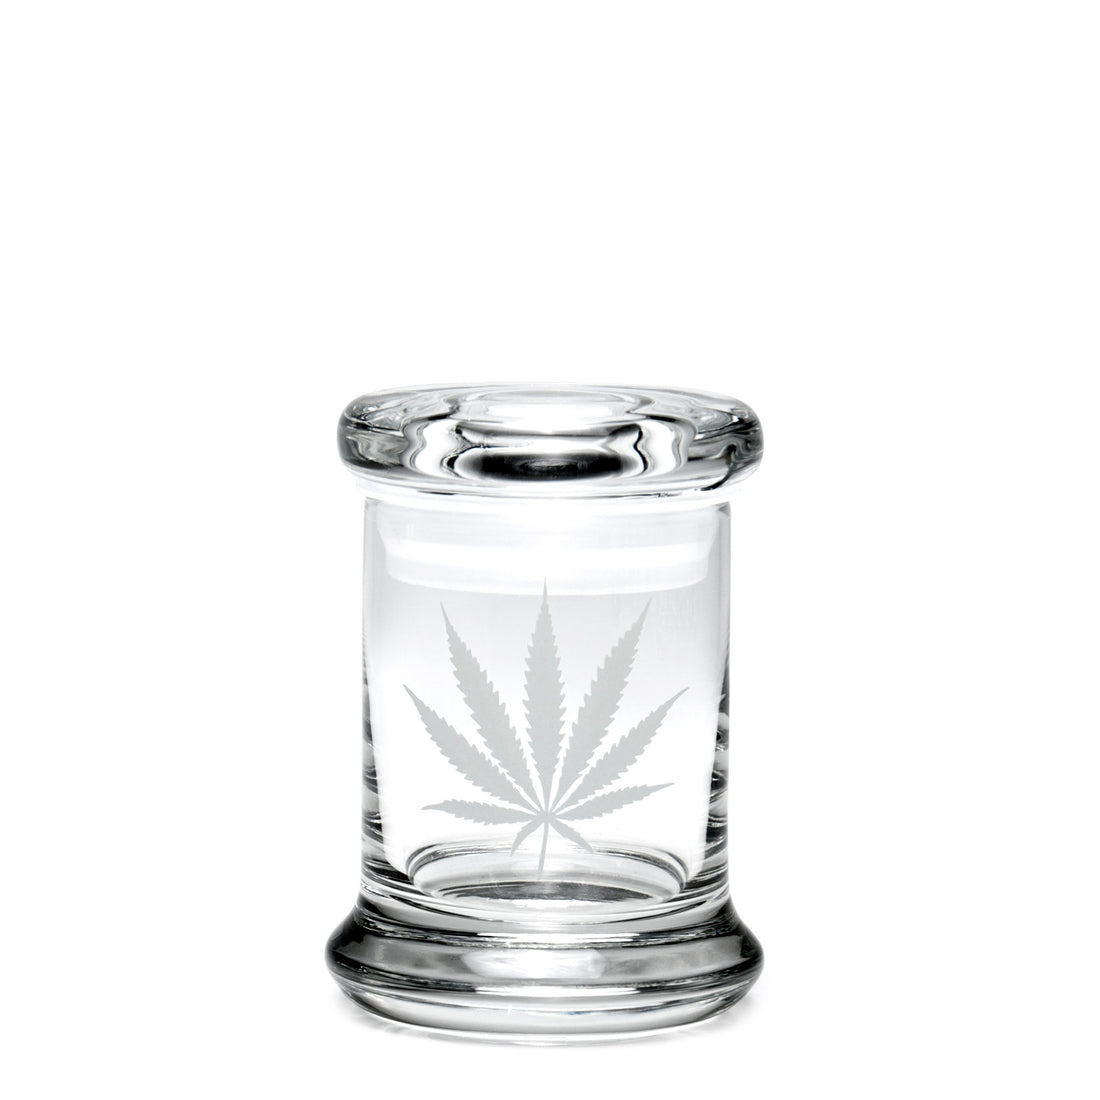 X-Small Pop-Top Silver Leaf - 420 Science - The most trusted online smoke shop.